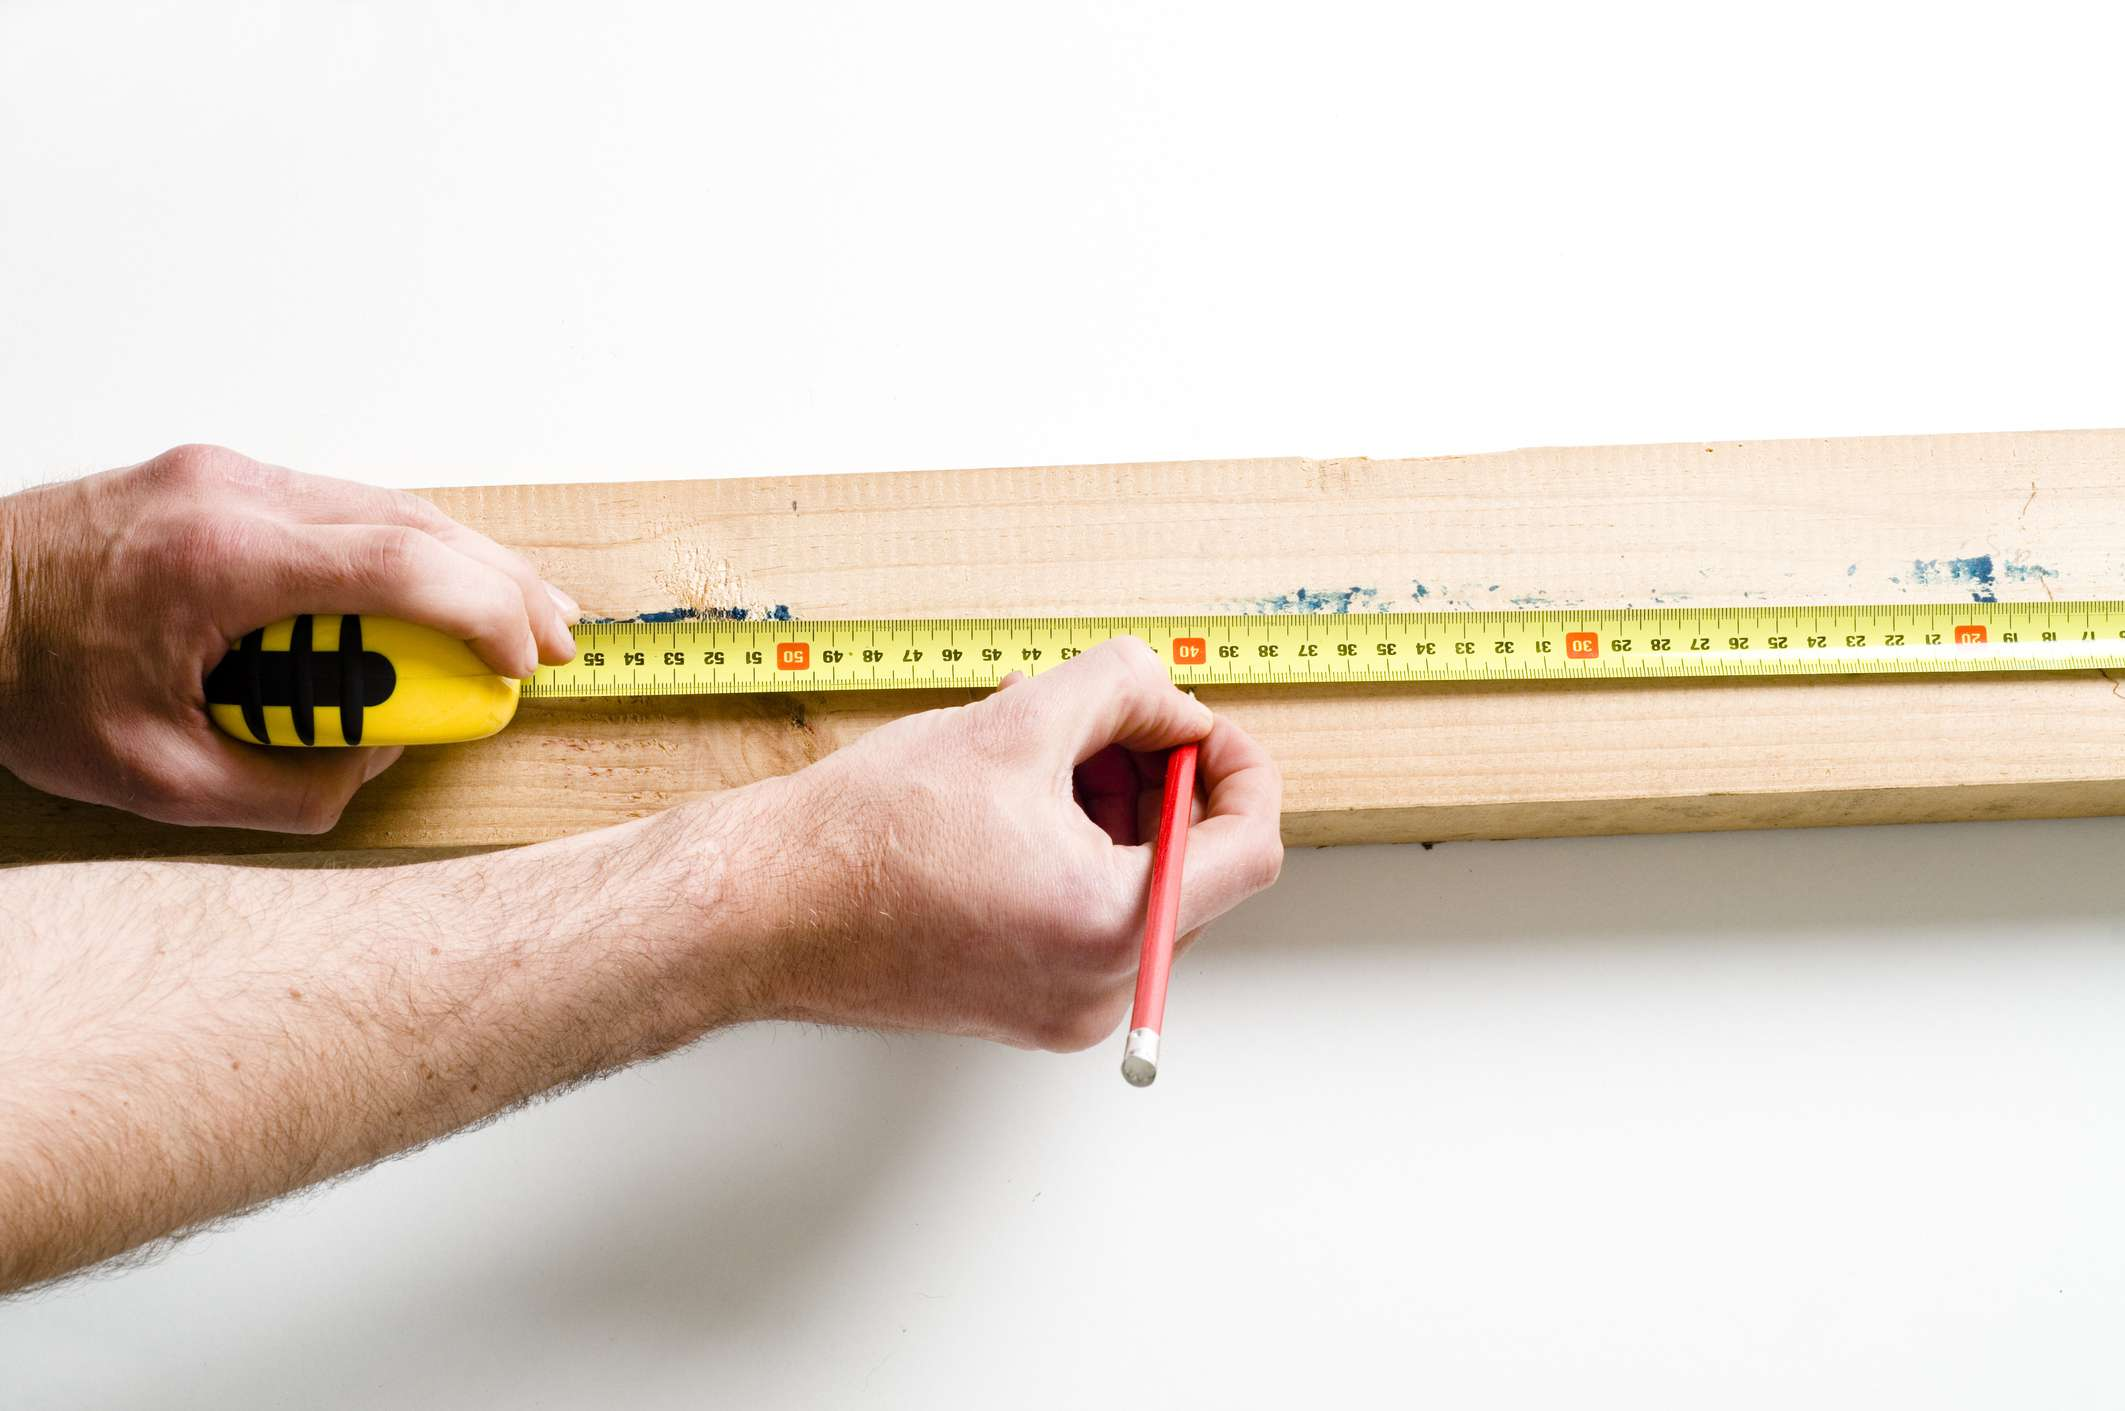 Hands measuring and marking wood